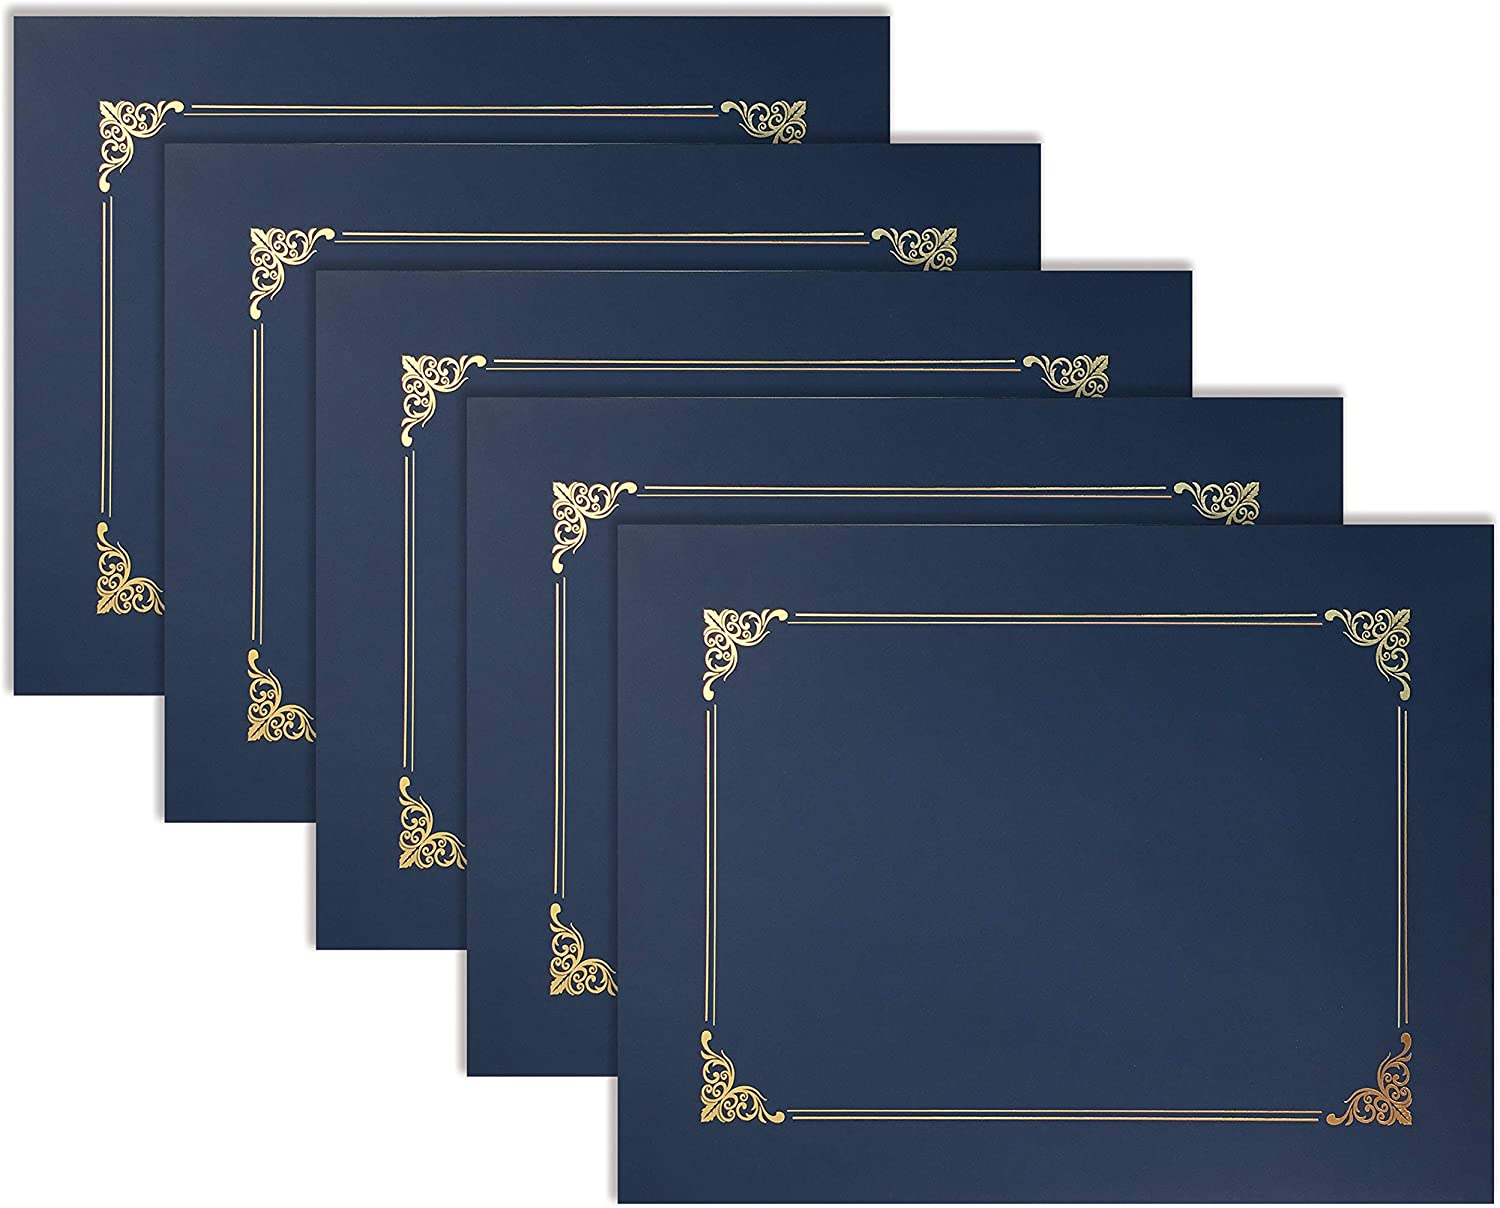 25 Pack Navy Blue Certificate Holders, Diploma Holders, Document Covers with Gold Foil Border, by Better Office Products, for Letter Size Paper, 25 Count, Blue : Office Products